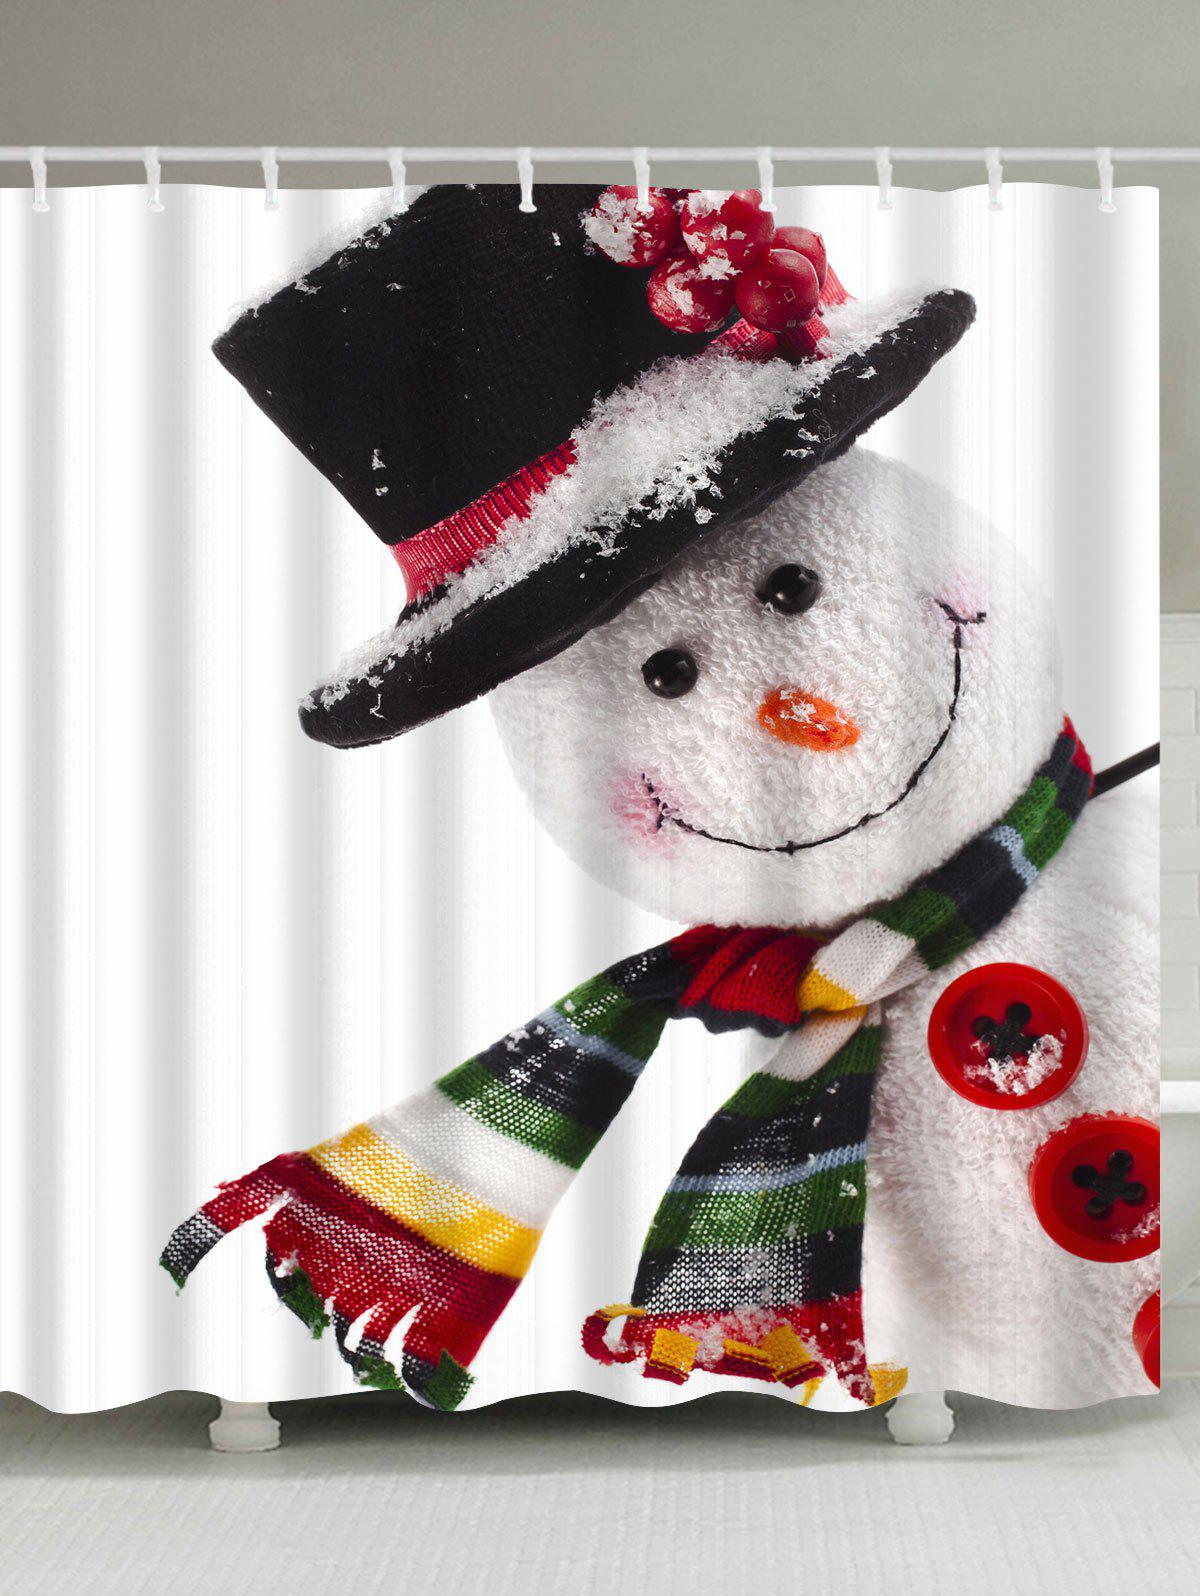 Polyester Waterproof Snowman Christmas Bath CurtainHOME<br><br>Size: W59 INCH * L71 INCH; Color: WHITE; Products Type: Shower Curtains; Materials: Polyester; Pattern: Snowman; Style: Festival; Number of Hook Holes: W59 inch*L71 inch: 10; W71 inch*L71 inch: 12; W71 inch*L79 inch: 12; Package Contents: 1 x Shower Curtain 1 x Hooks (Set);